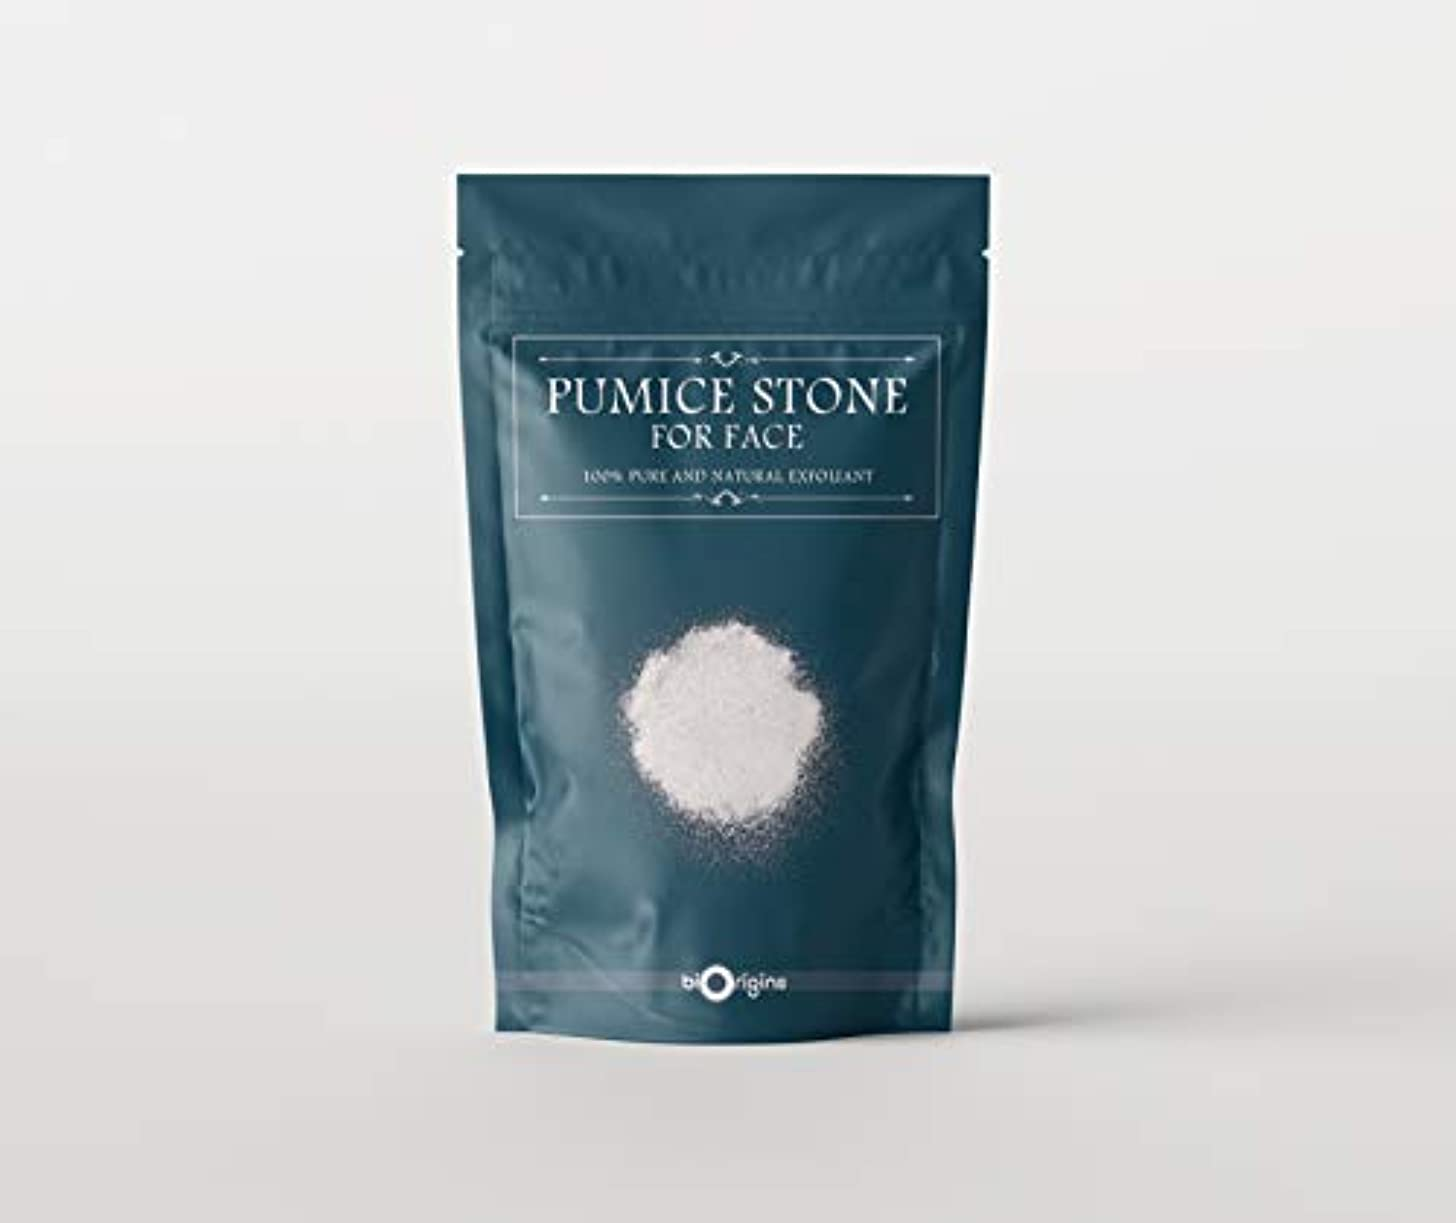 陰気内向きロッカーPumice Stone Superfine For Face Exfoliant 5Kg